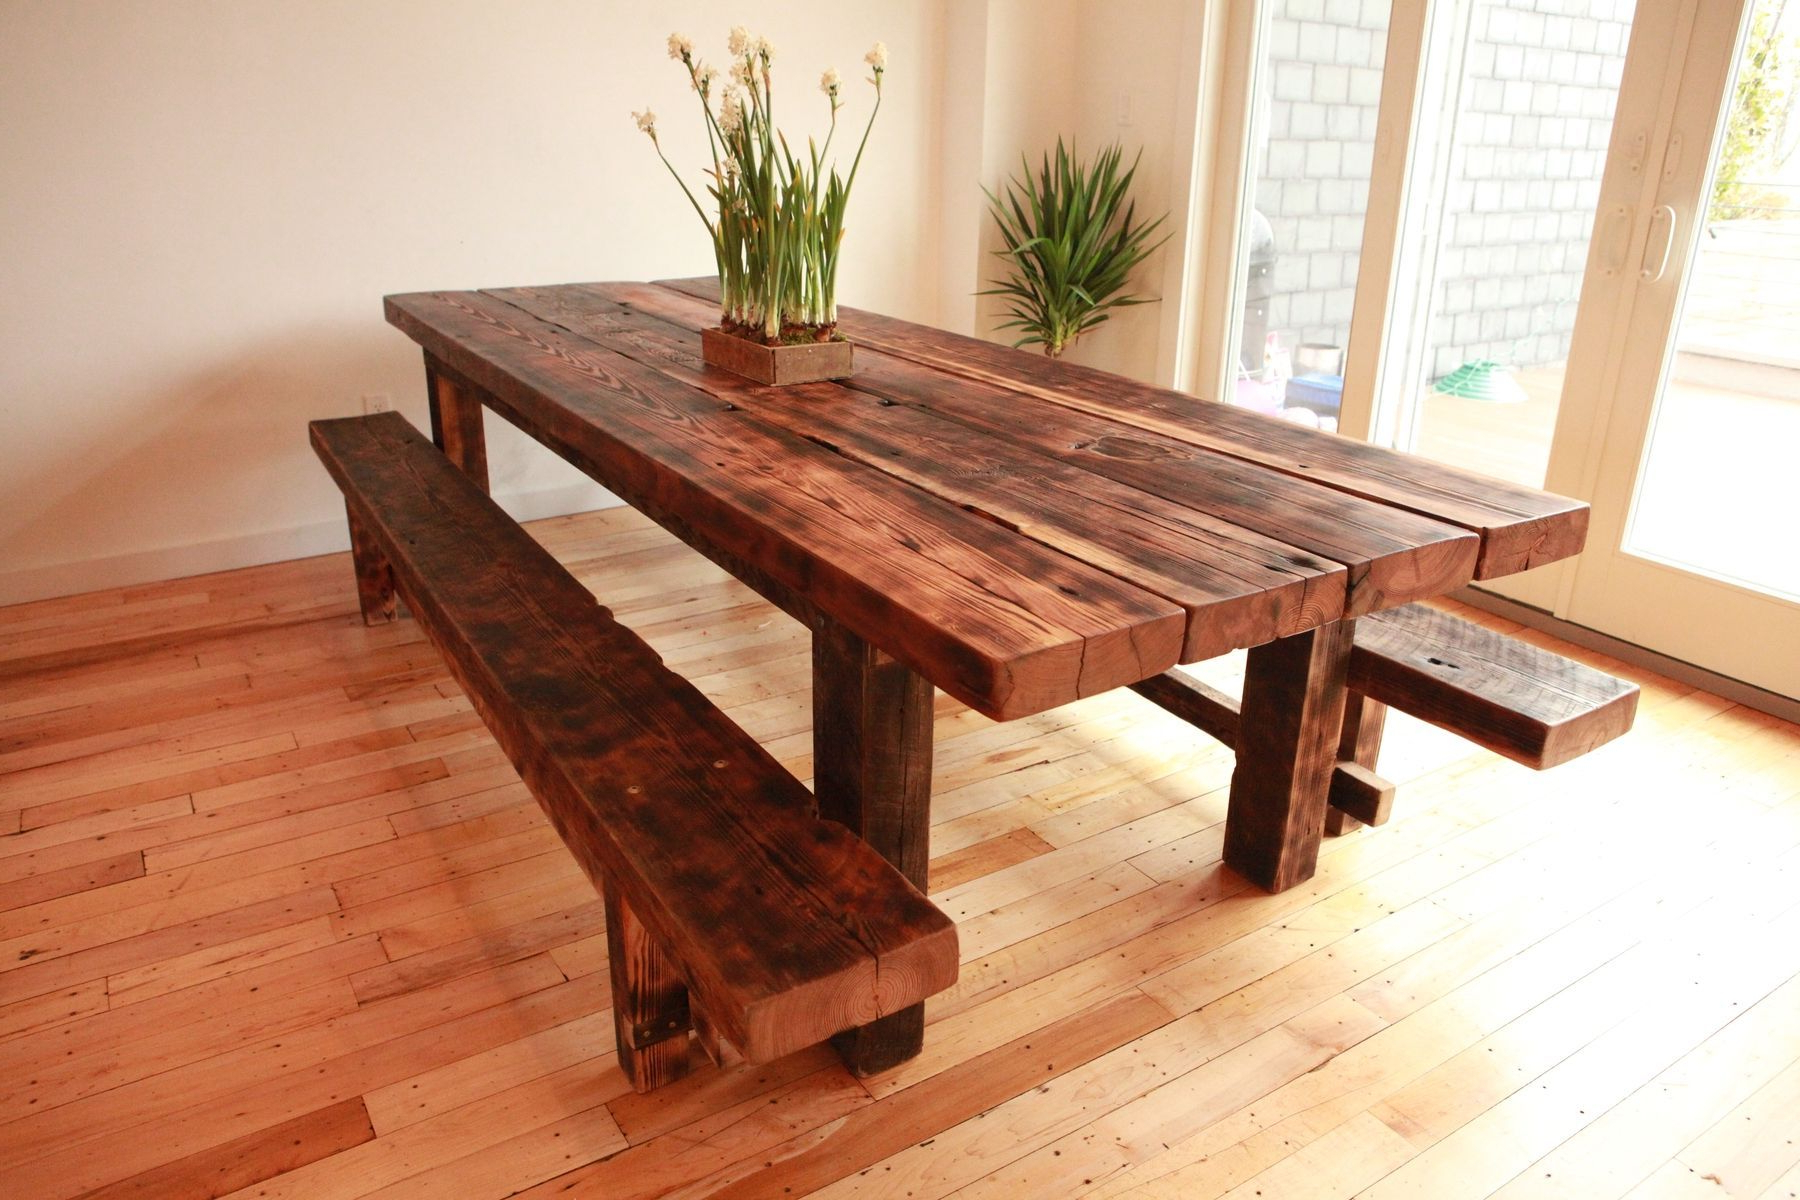 Most Recent Build Your Personal Table. Free Plans For Farmhouse Tables Pertaining To Rustic Pine Small Dining Tables (Gallery 8 of 30)